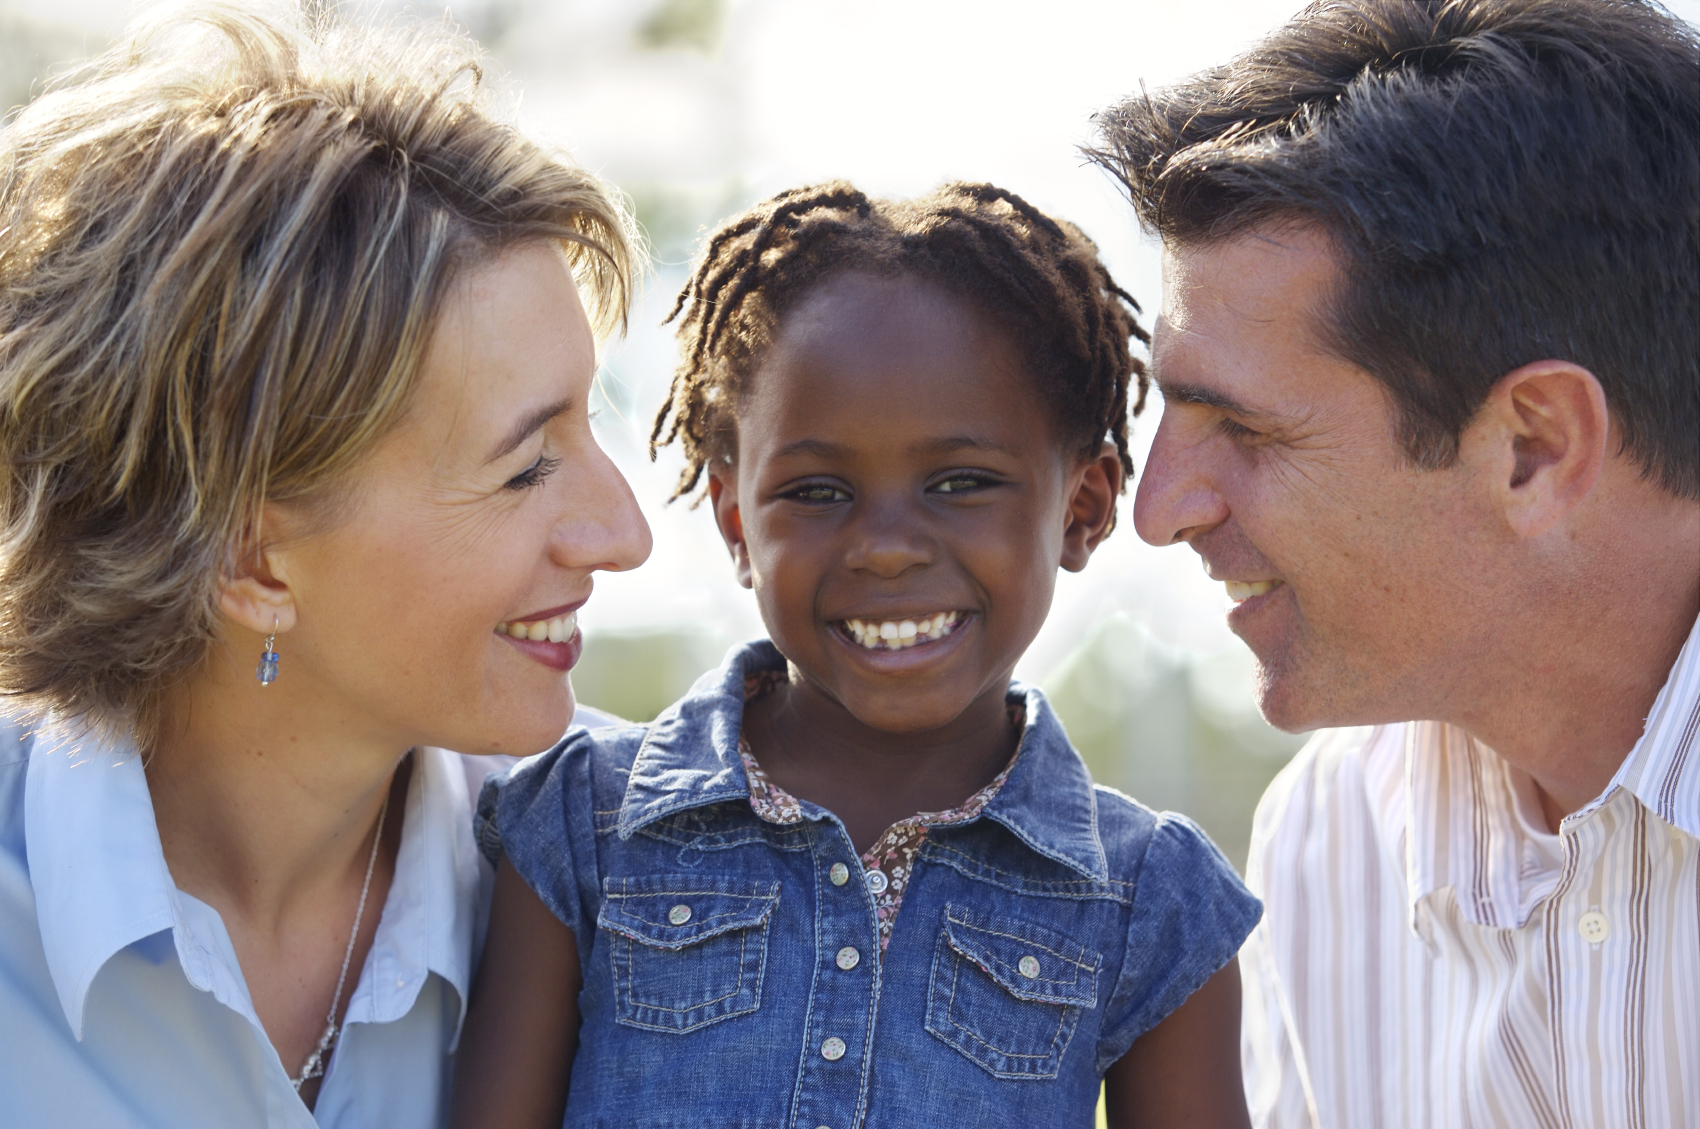 Situation familiar Positives on interracial adoption remarkable, this